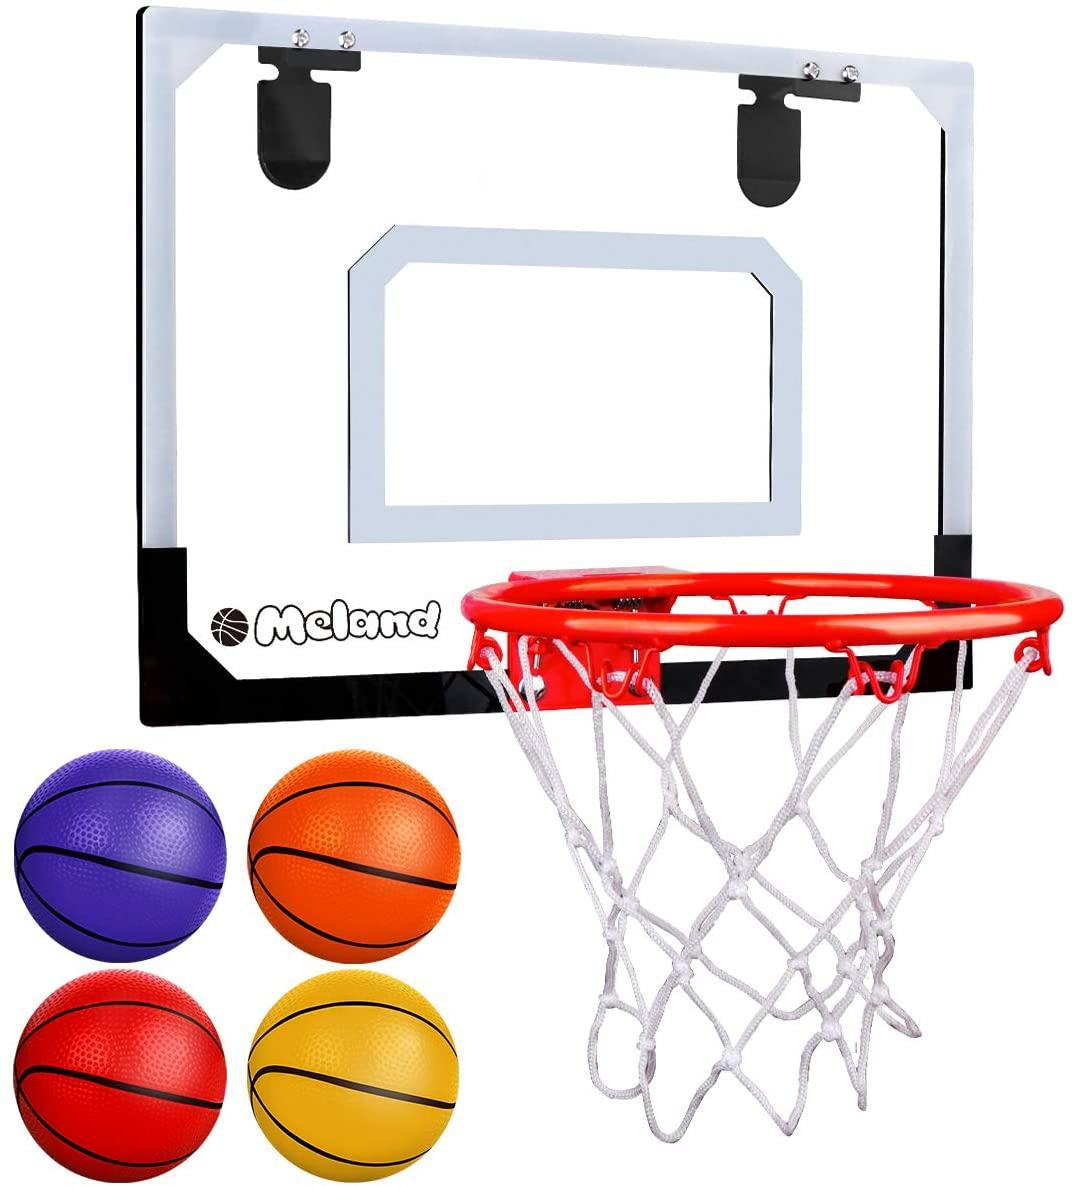 Meland Indoor Mini Basketball Hoop Set for Kids - Basketball Hoop for Door with 4 Balls & Complete Basketball Accessories - Basketball Toy Gifts for Kids Boys Teens